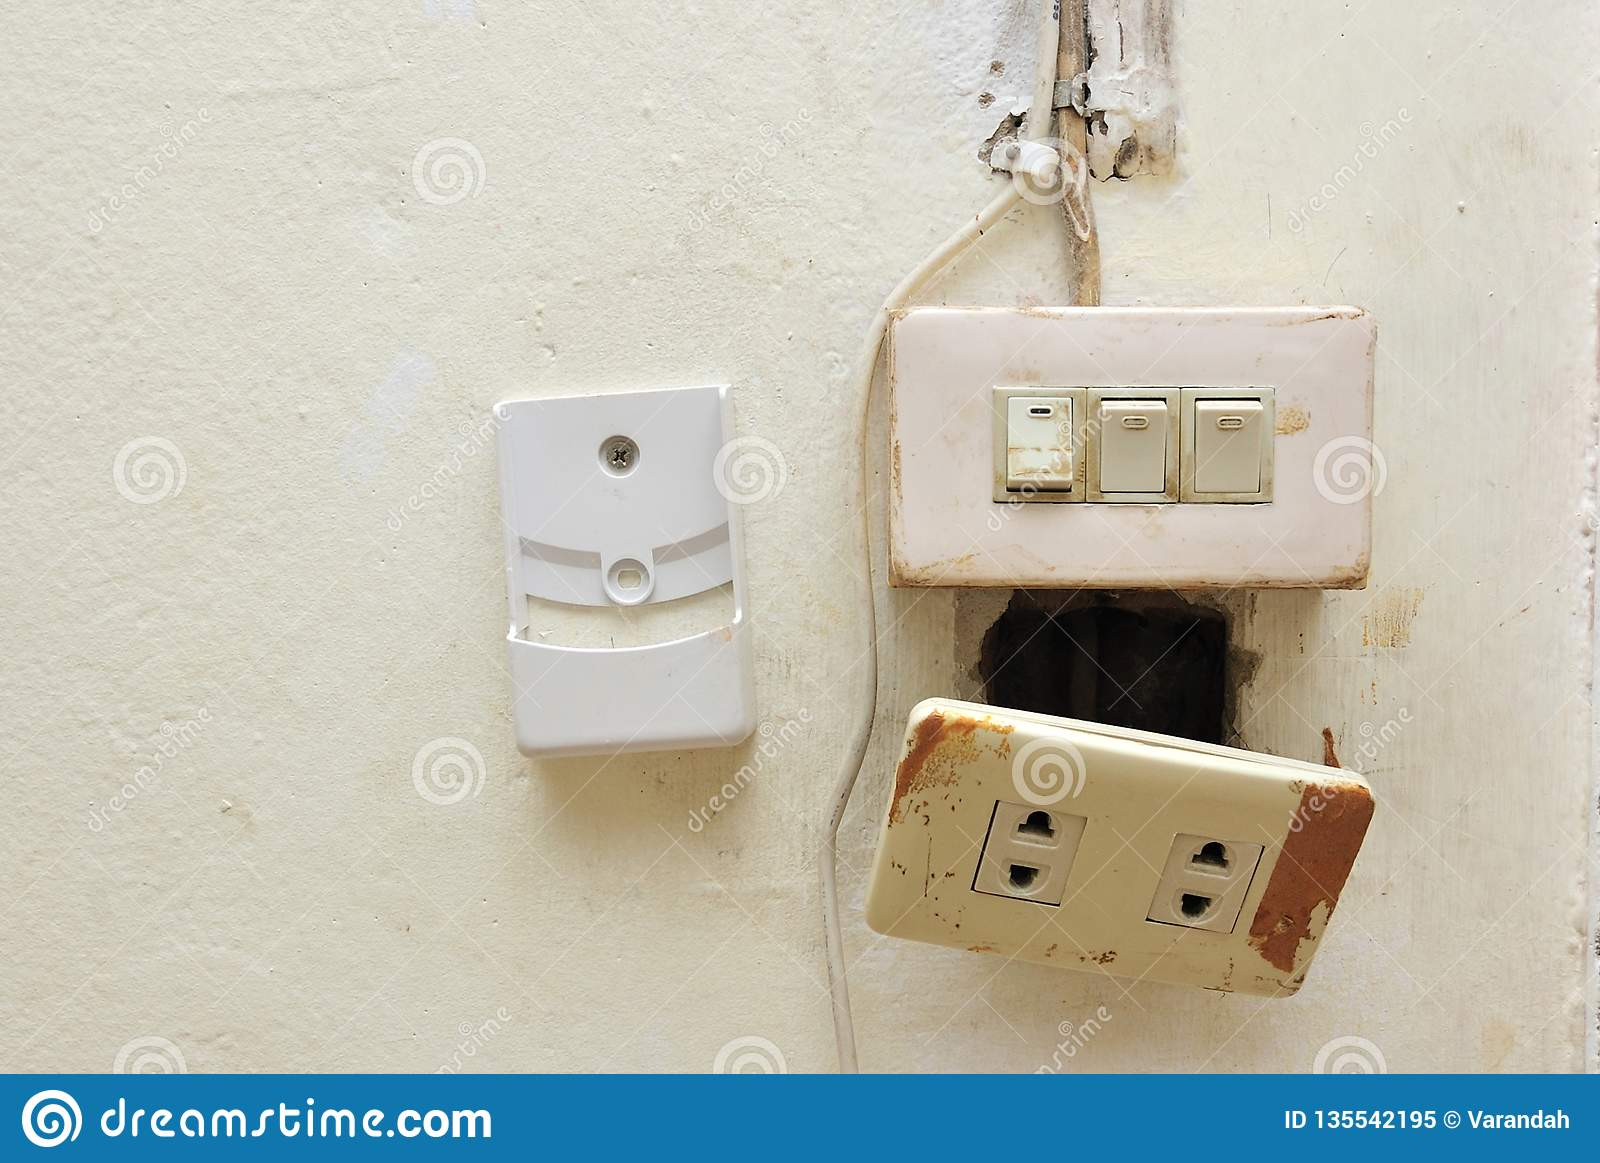 hight resolution of a light switch and electrical breaker with damaged wiring on the wall